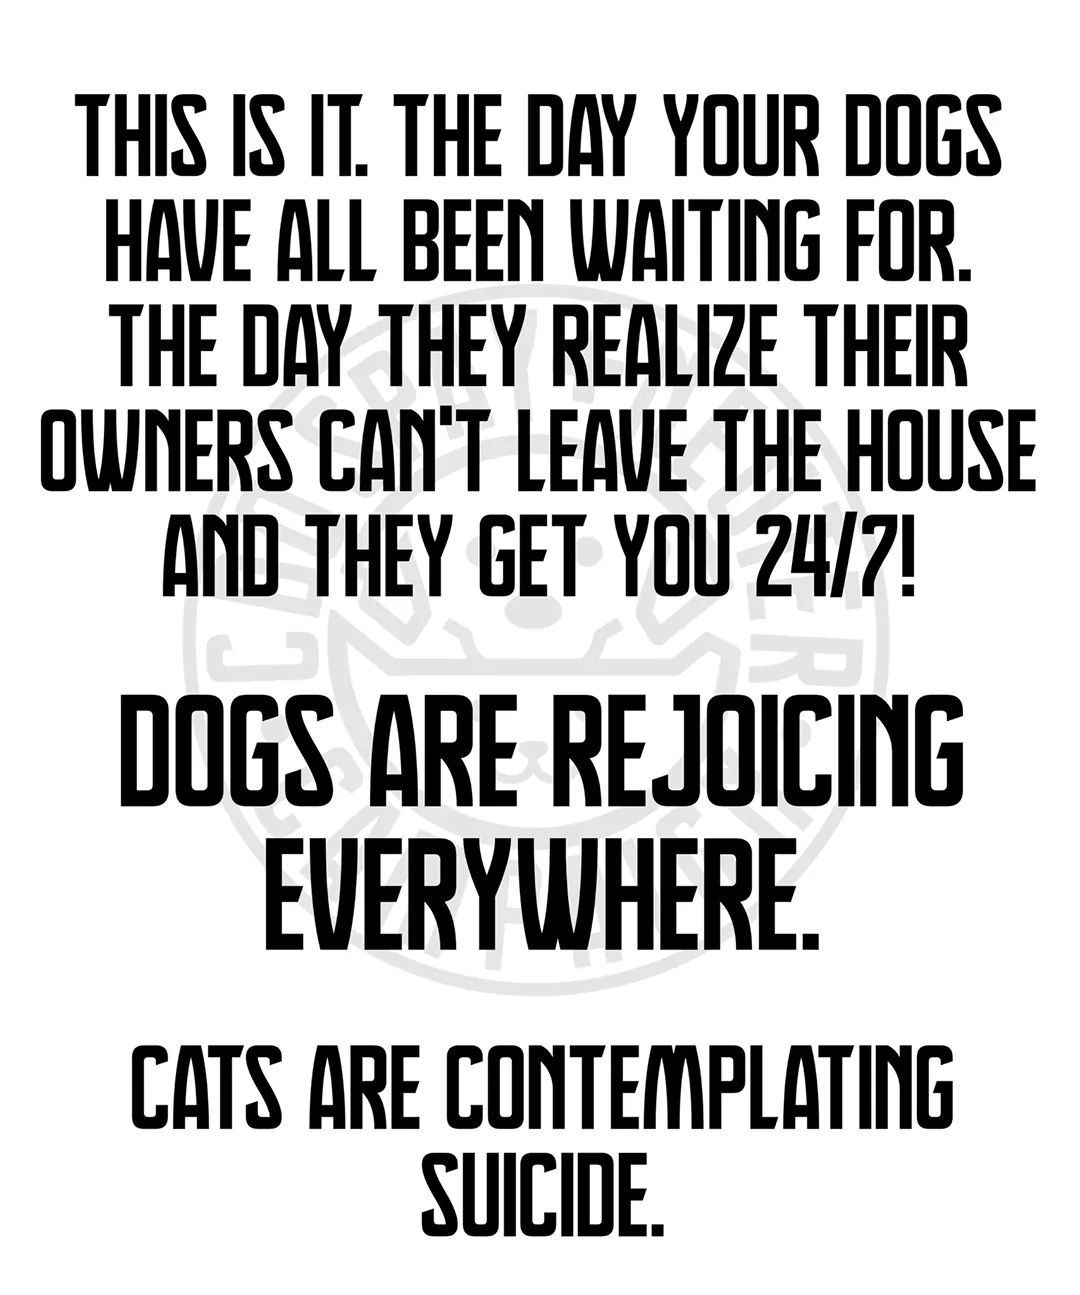 Pin by Elizabeth Larson on Cats, Cats, Cats! in 2020